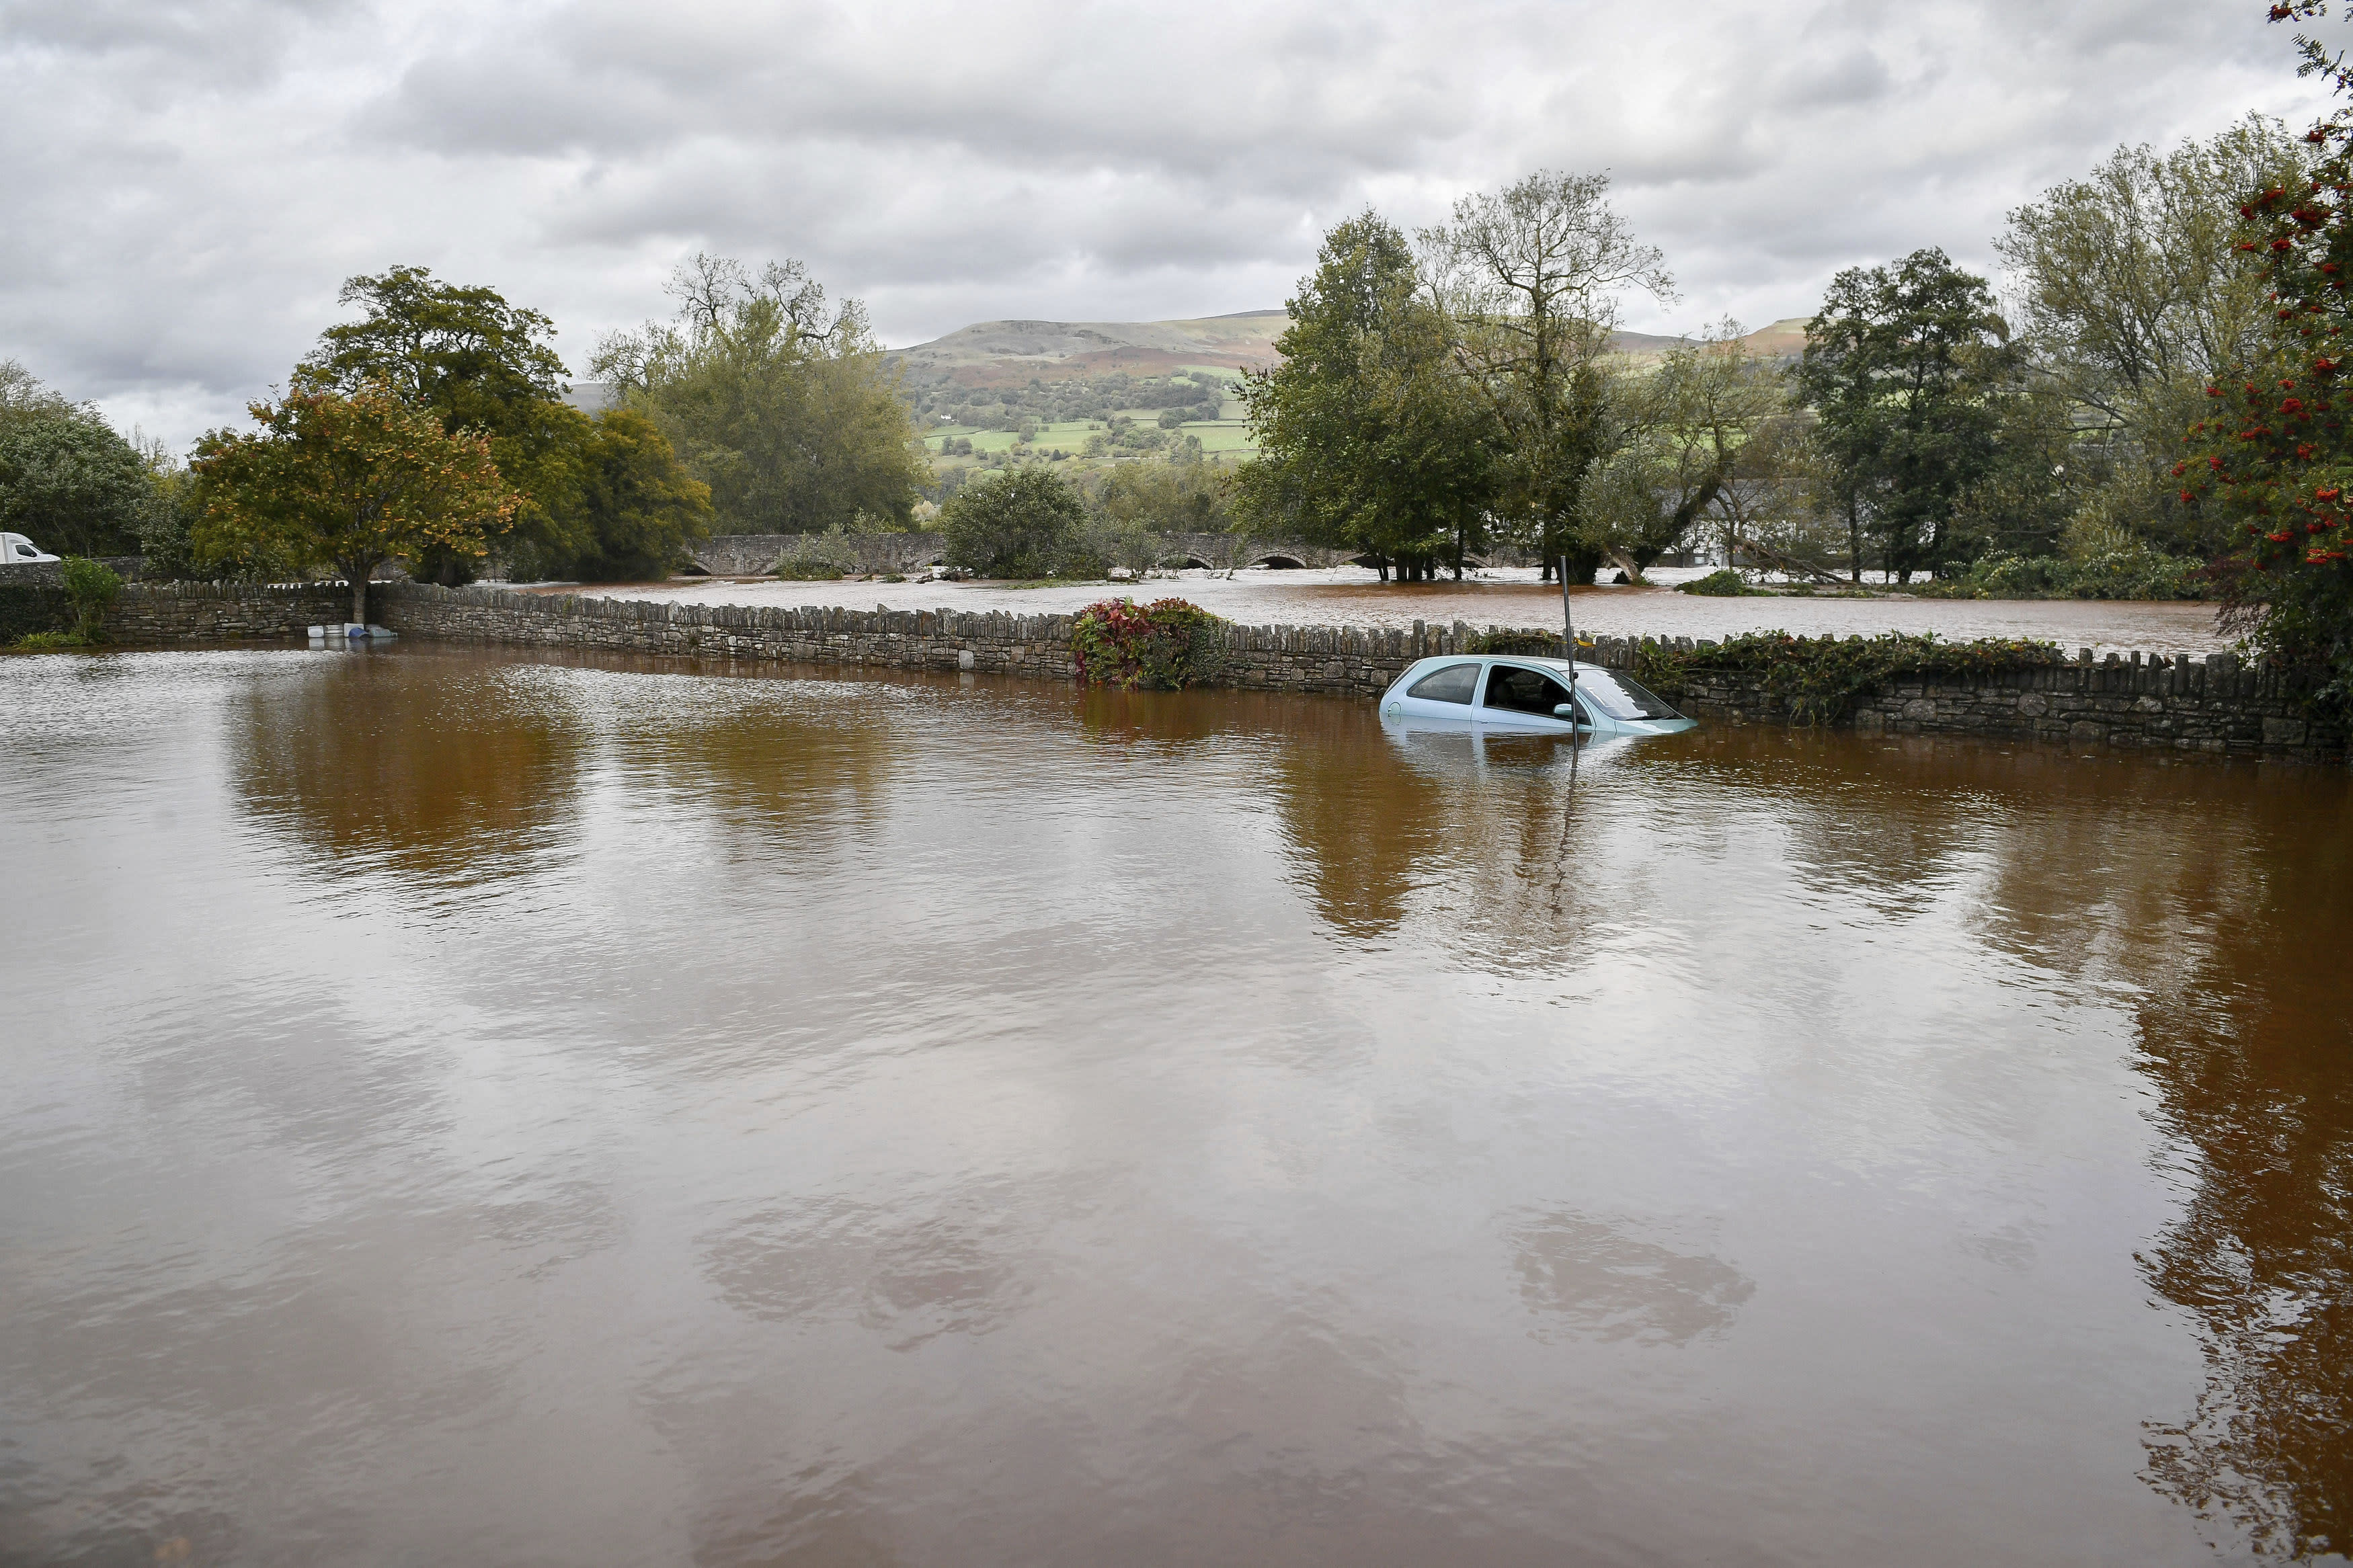 A stranded vehicle parked in flood water in a car park next to the A4077 where an amber weather warning is in force across the region as heavy rain is causing flooding, in Crickhowell, Wales, Saturday, Oct. 13, 2018. (Ben Birchall/PA via AP)